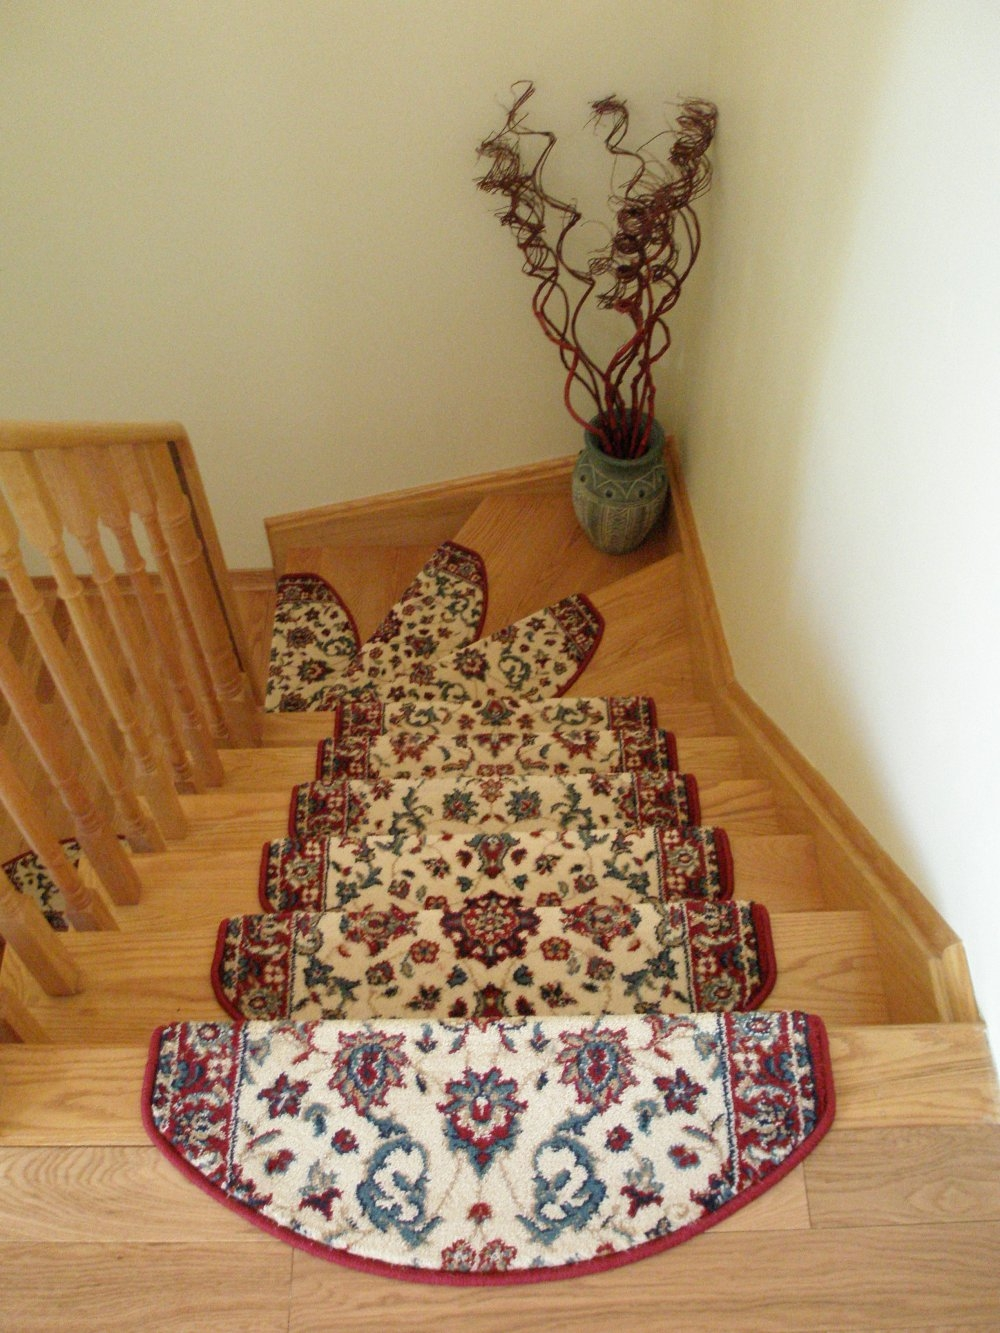 Carpet Stair Treads Stair Mats Stair Rugs With Regard To Rugs For Staircases (Image 6 of 15)